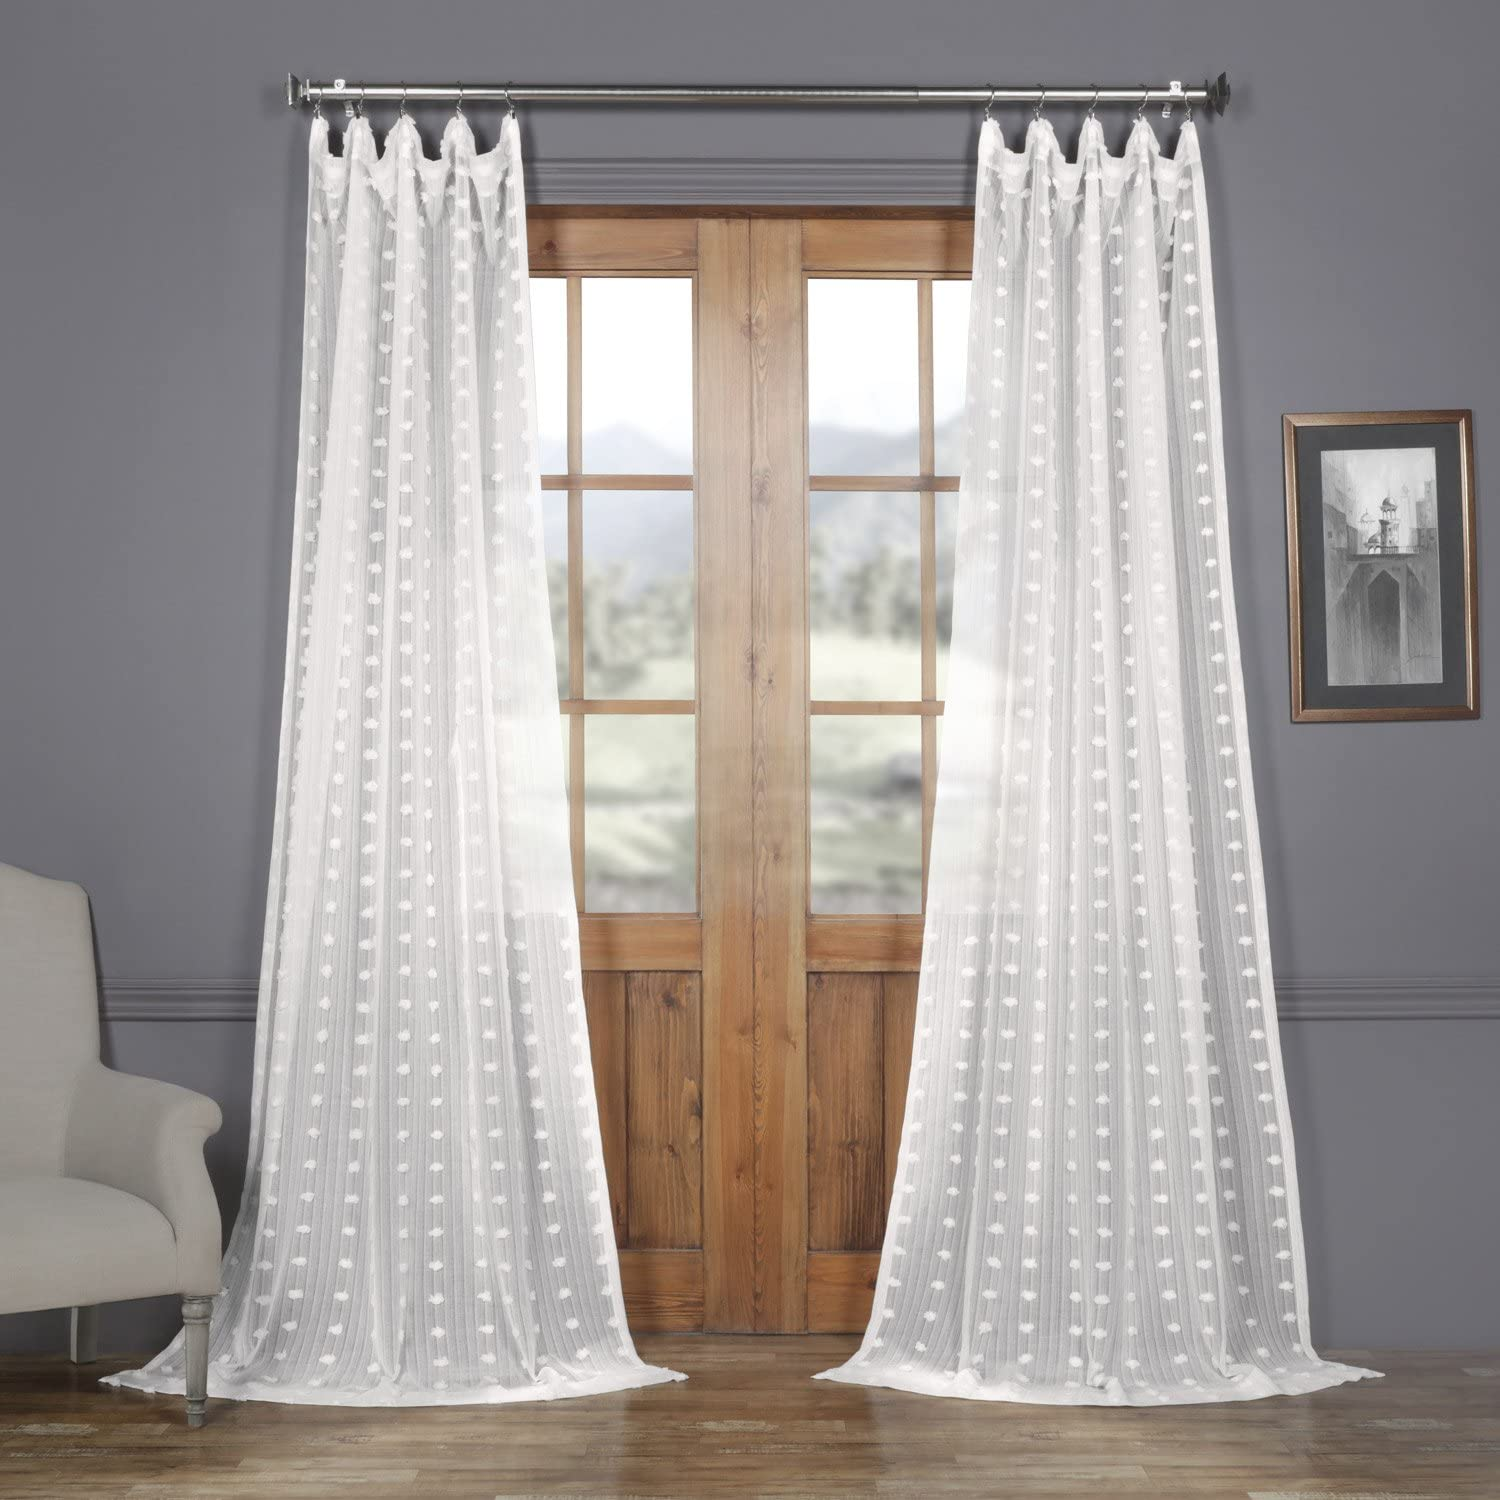 Butterfly Rod Pocket Curtain Panels set of 2. Butterfly Linen Fabric Two Natural Linen Panels 56 x 100